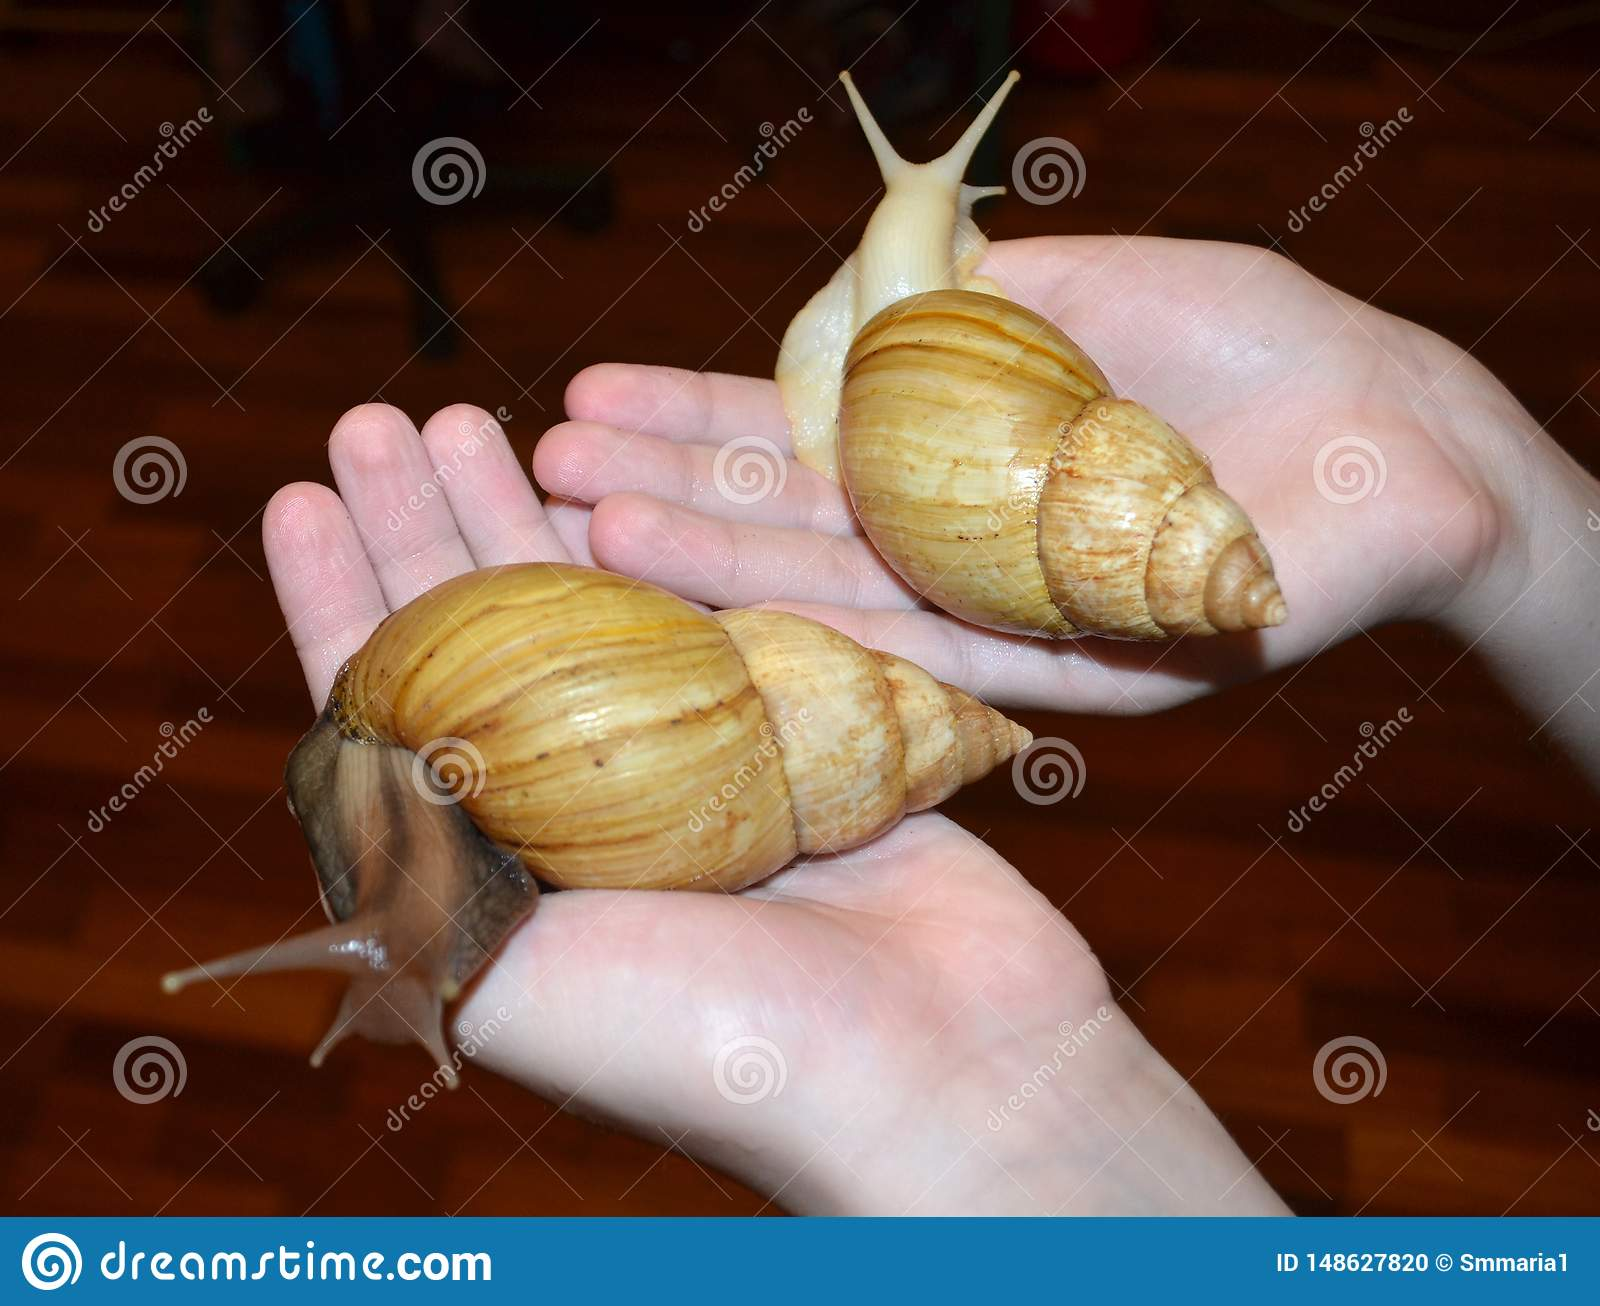 Two large Achatina snails